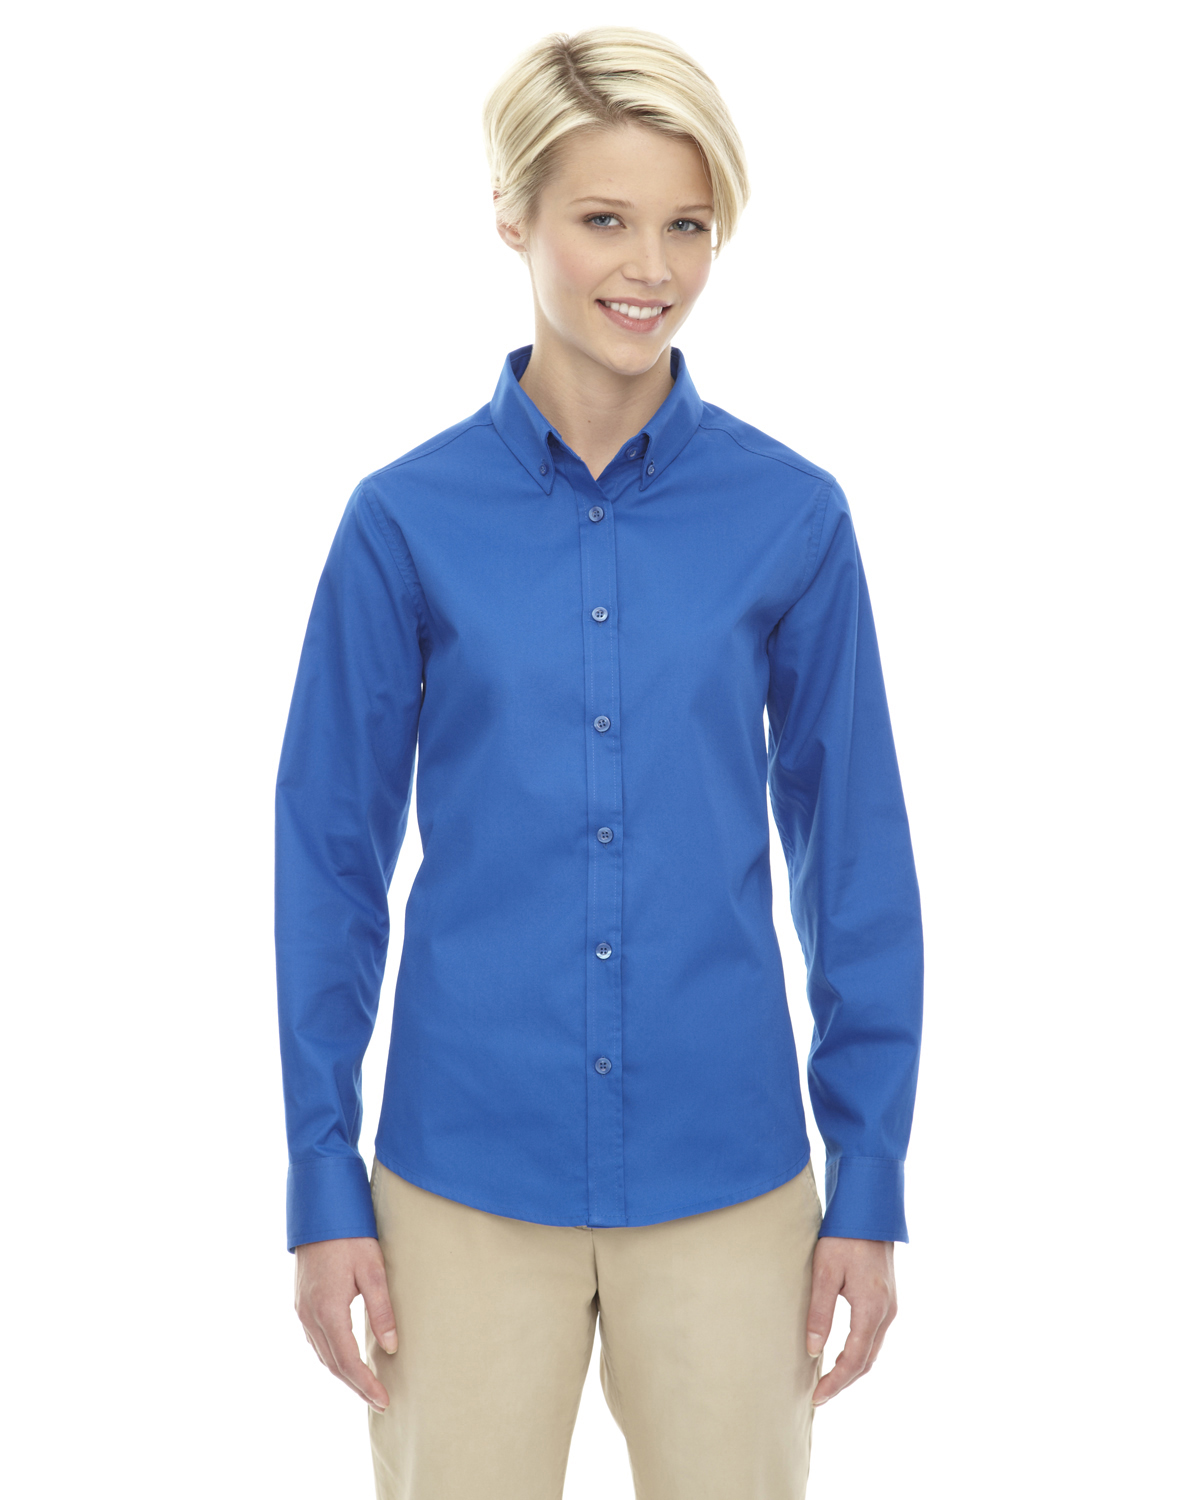 78193 Ash City Core 365 Ladies' Operate Long-Sleeve Twill Shirt